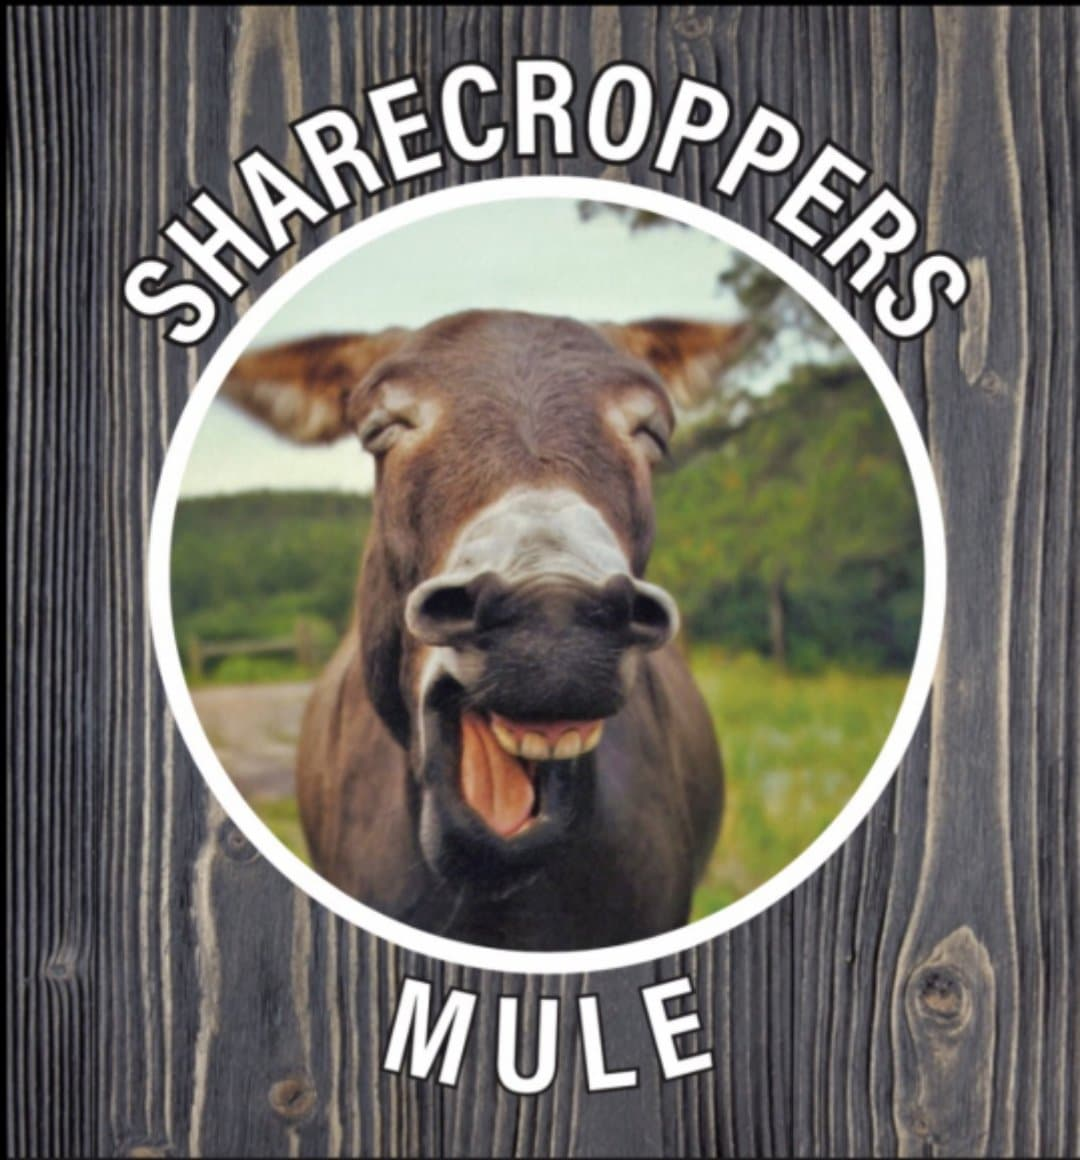 Sharecroppers Mule